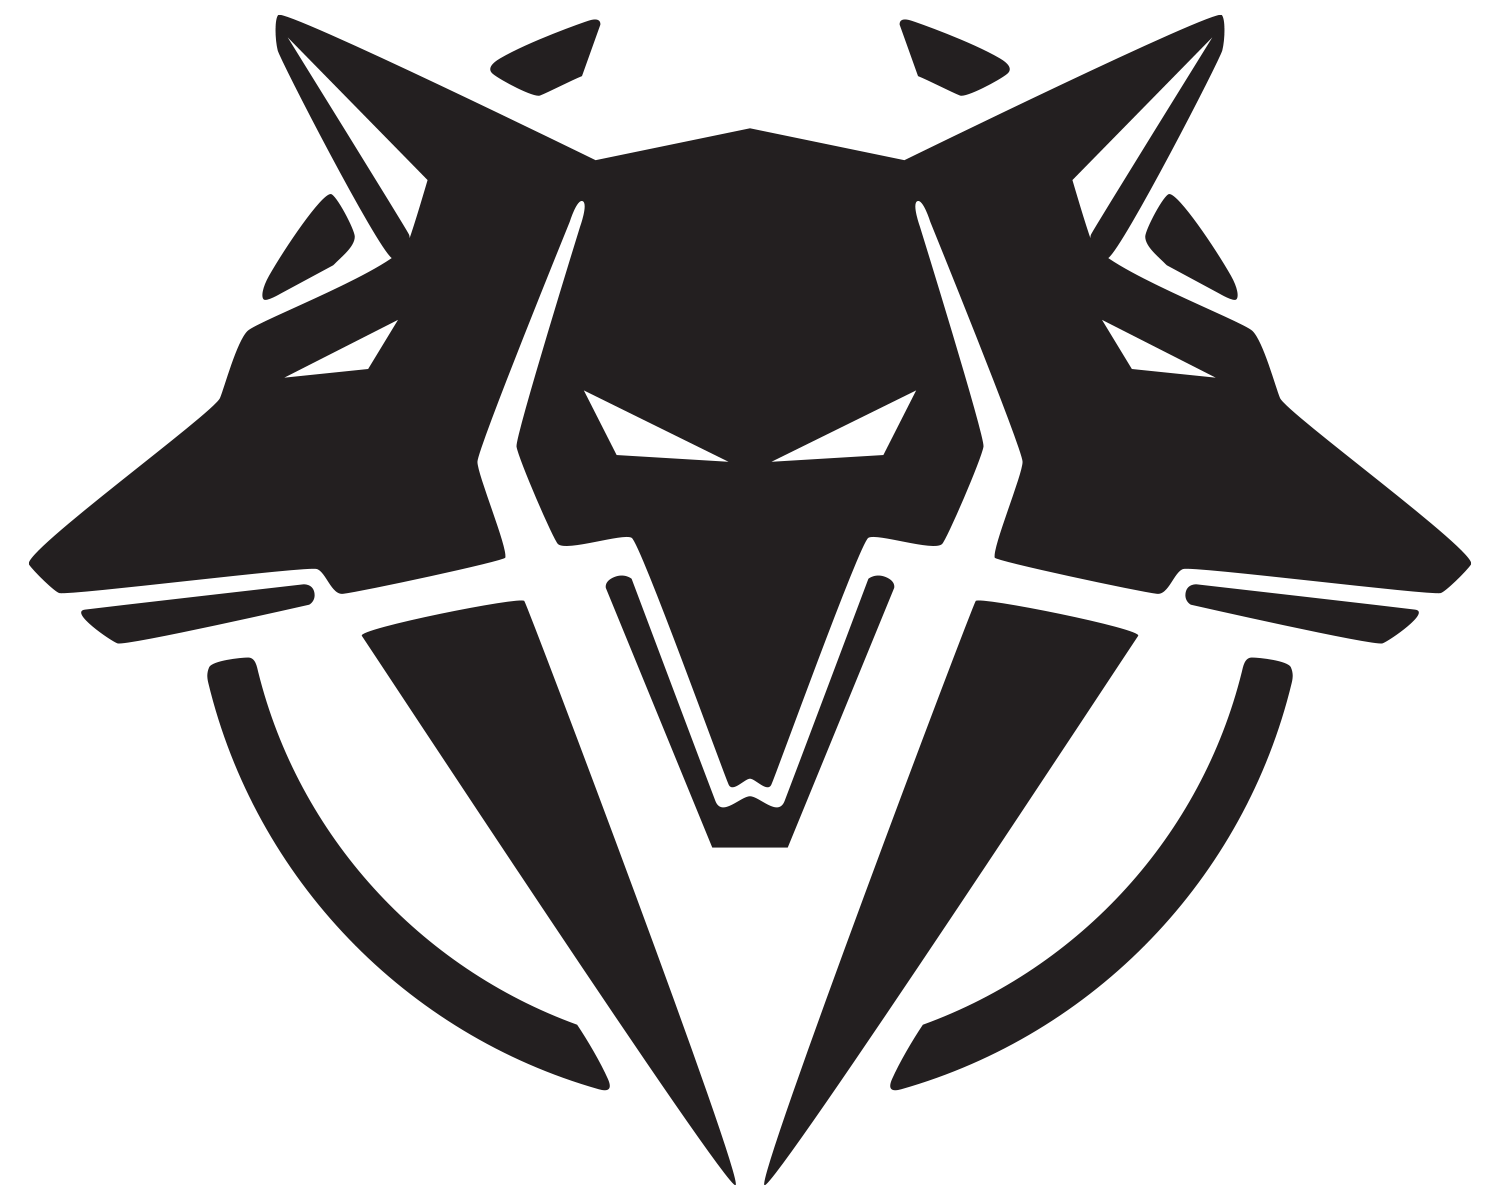 Devil dog clipart png black and white library Devil Images - QyGjxZ png black and white library